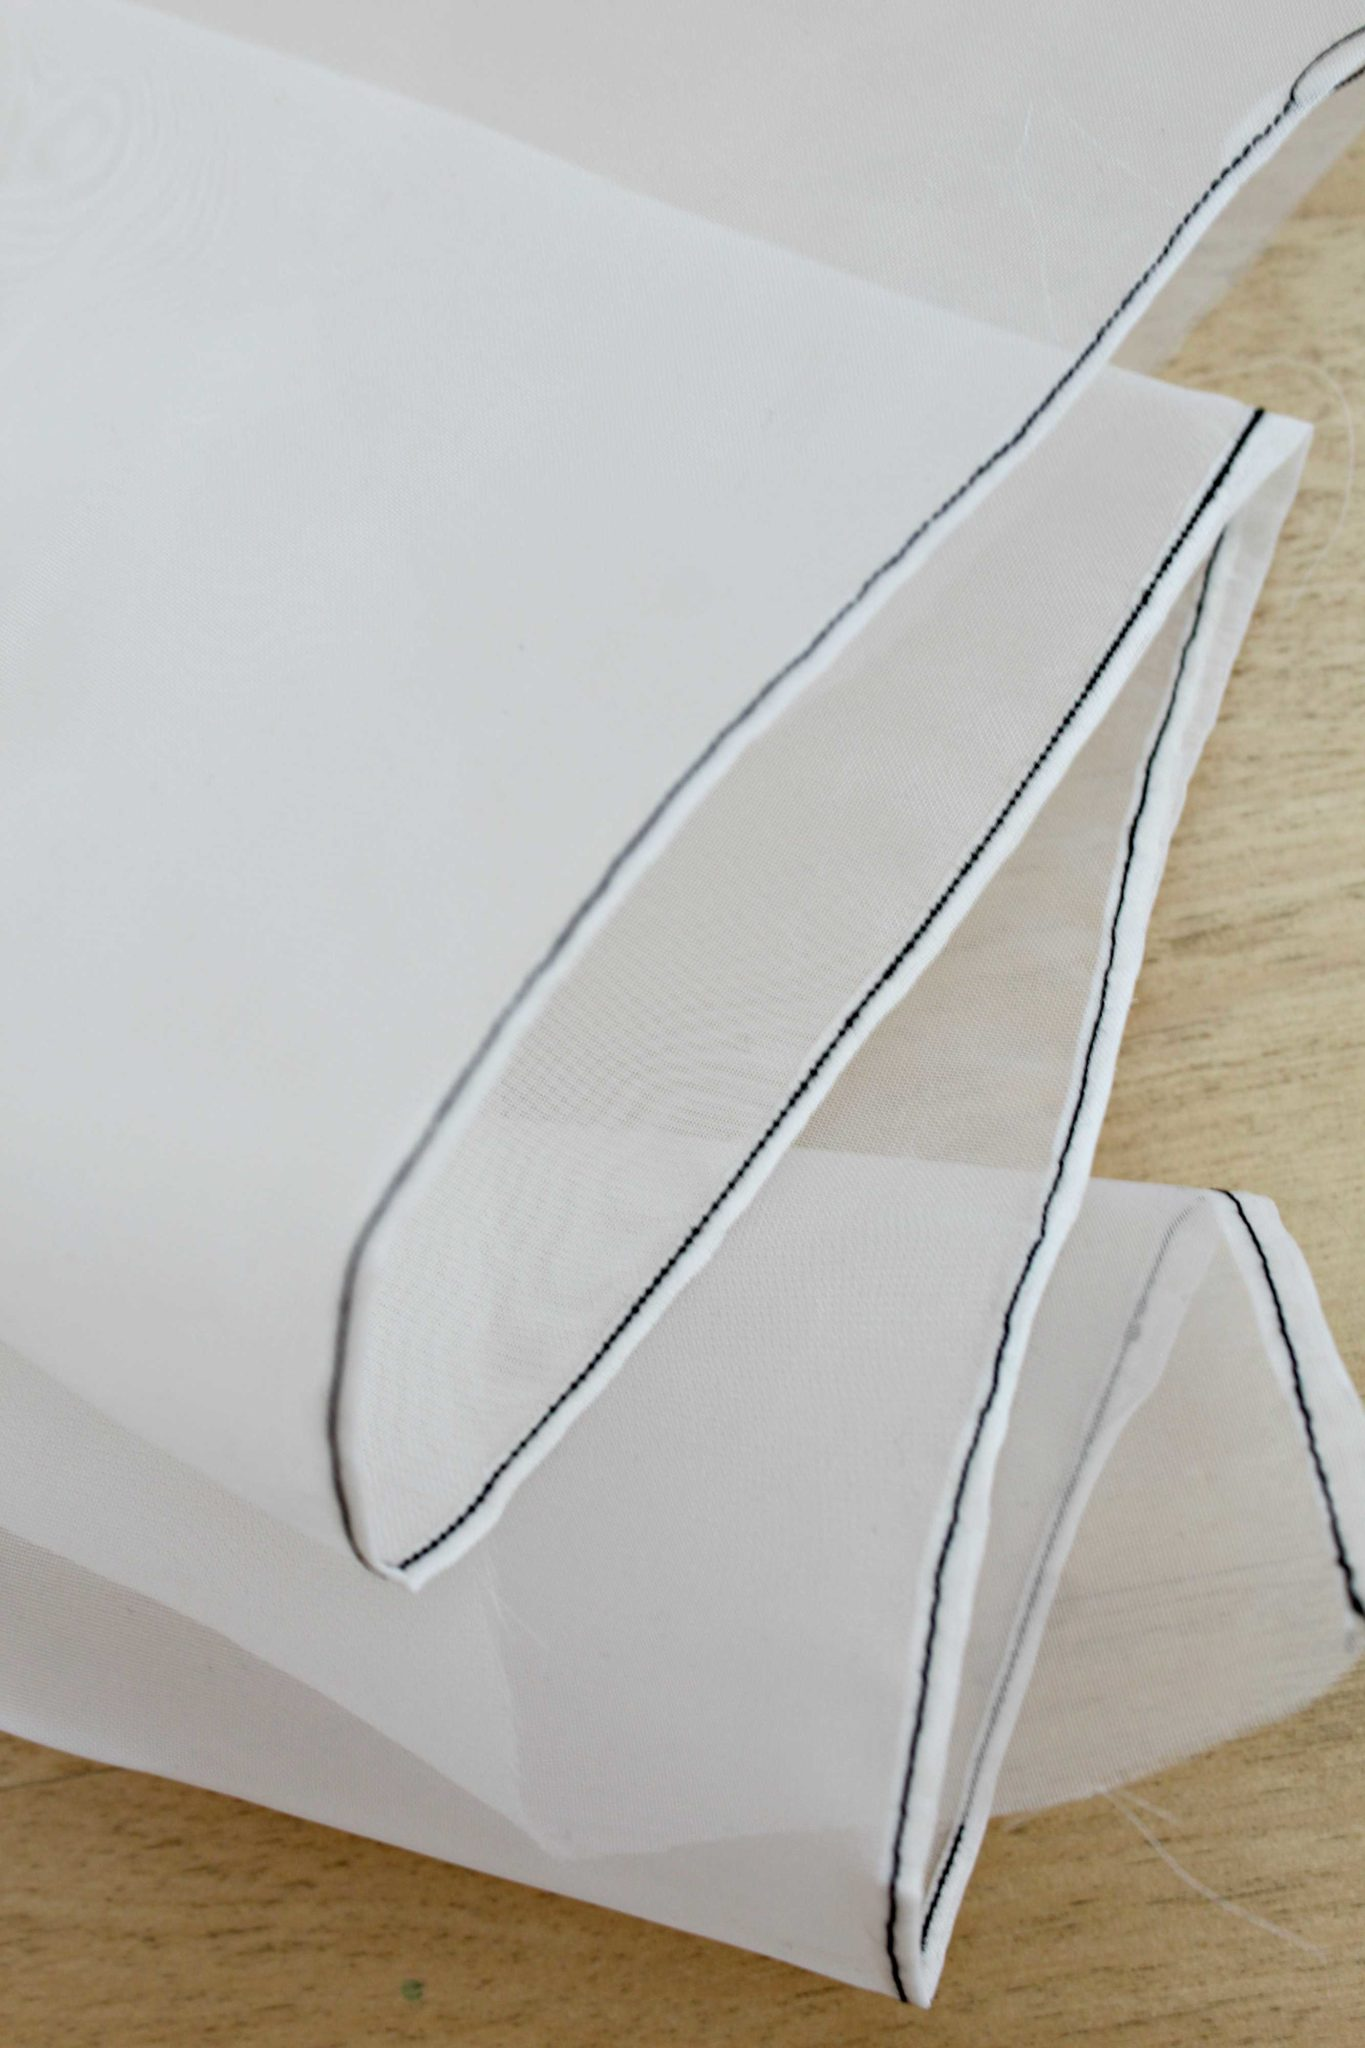 How To Sew A Rolled Hem With A Rolled Hem Foot